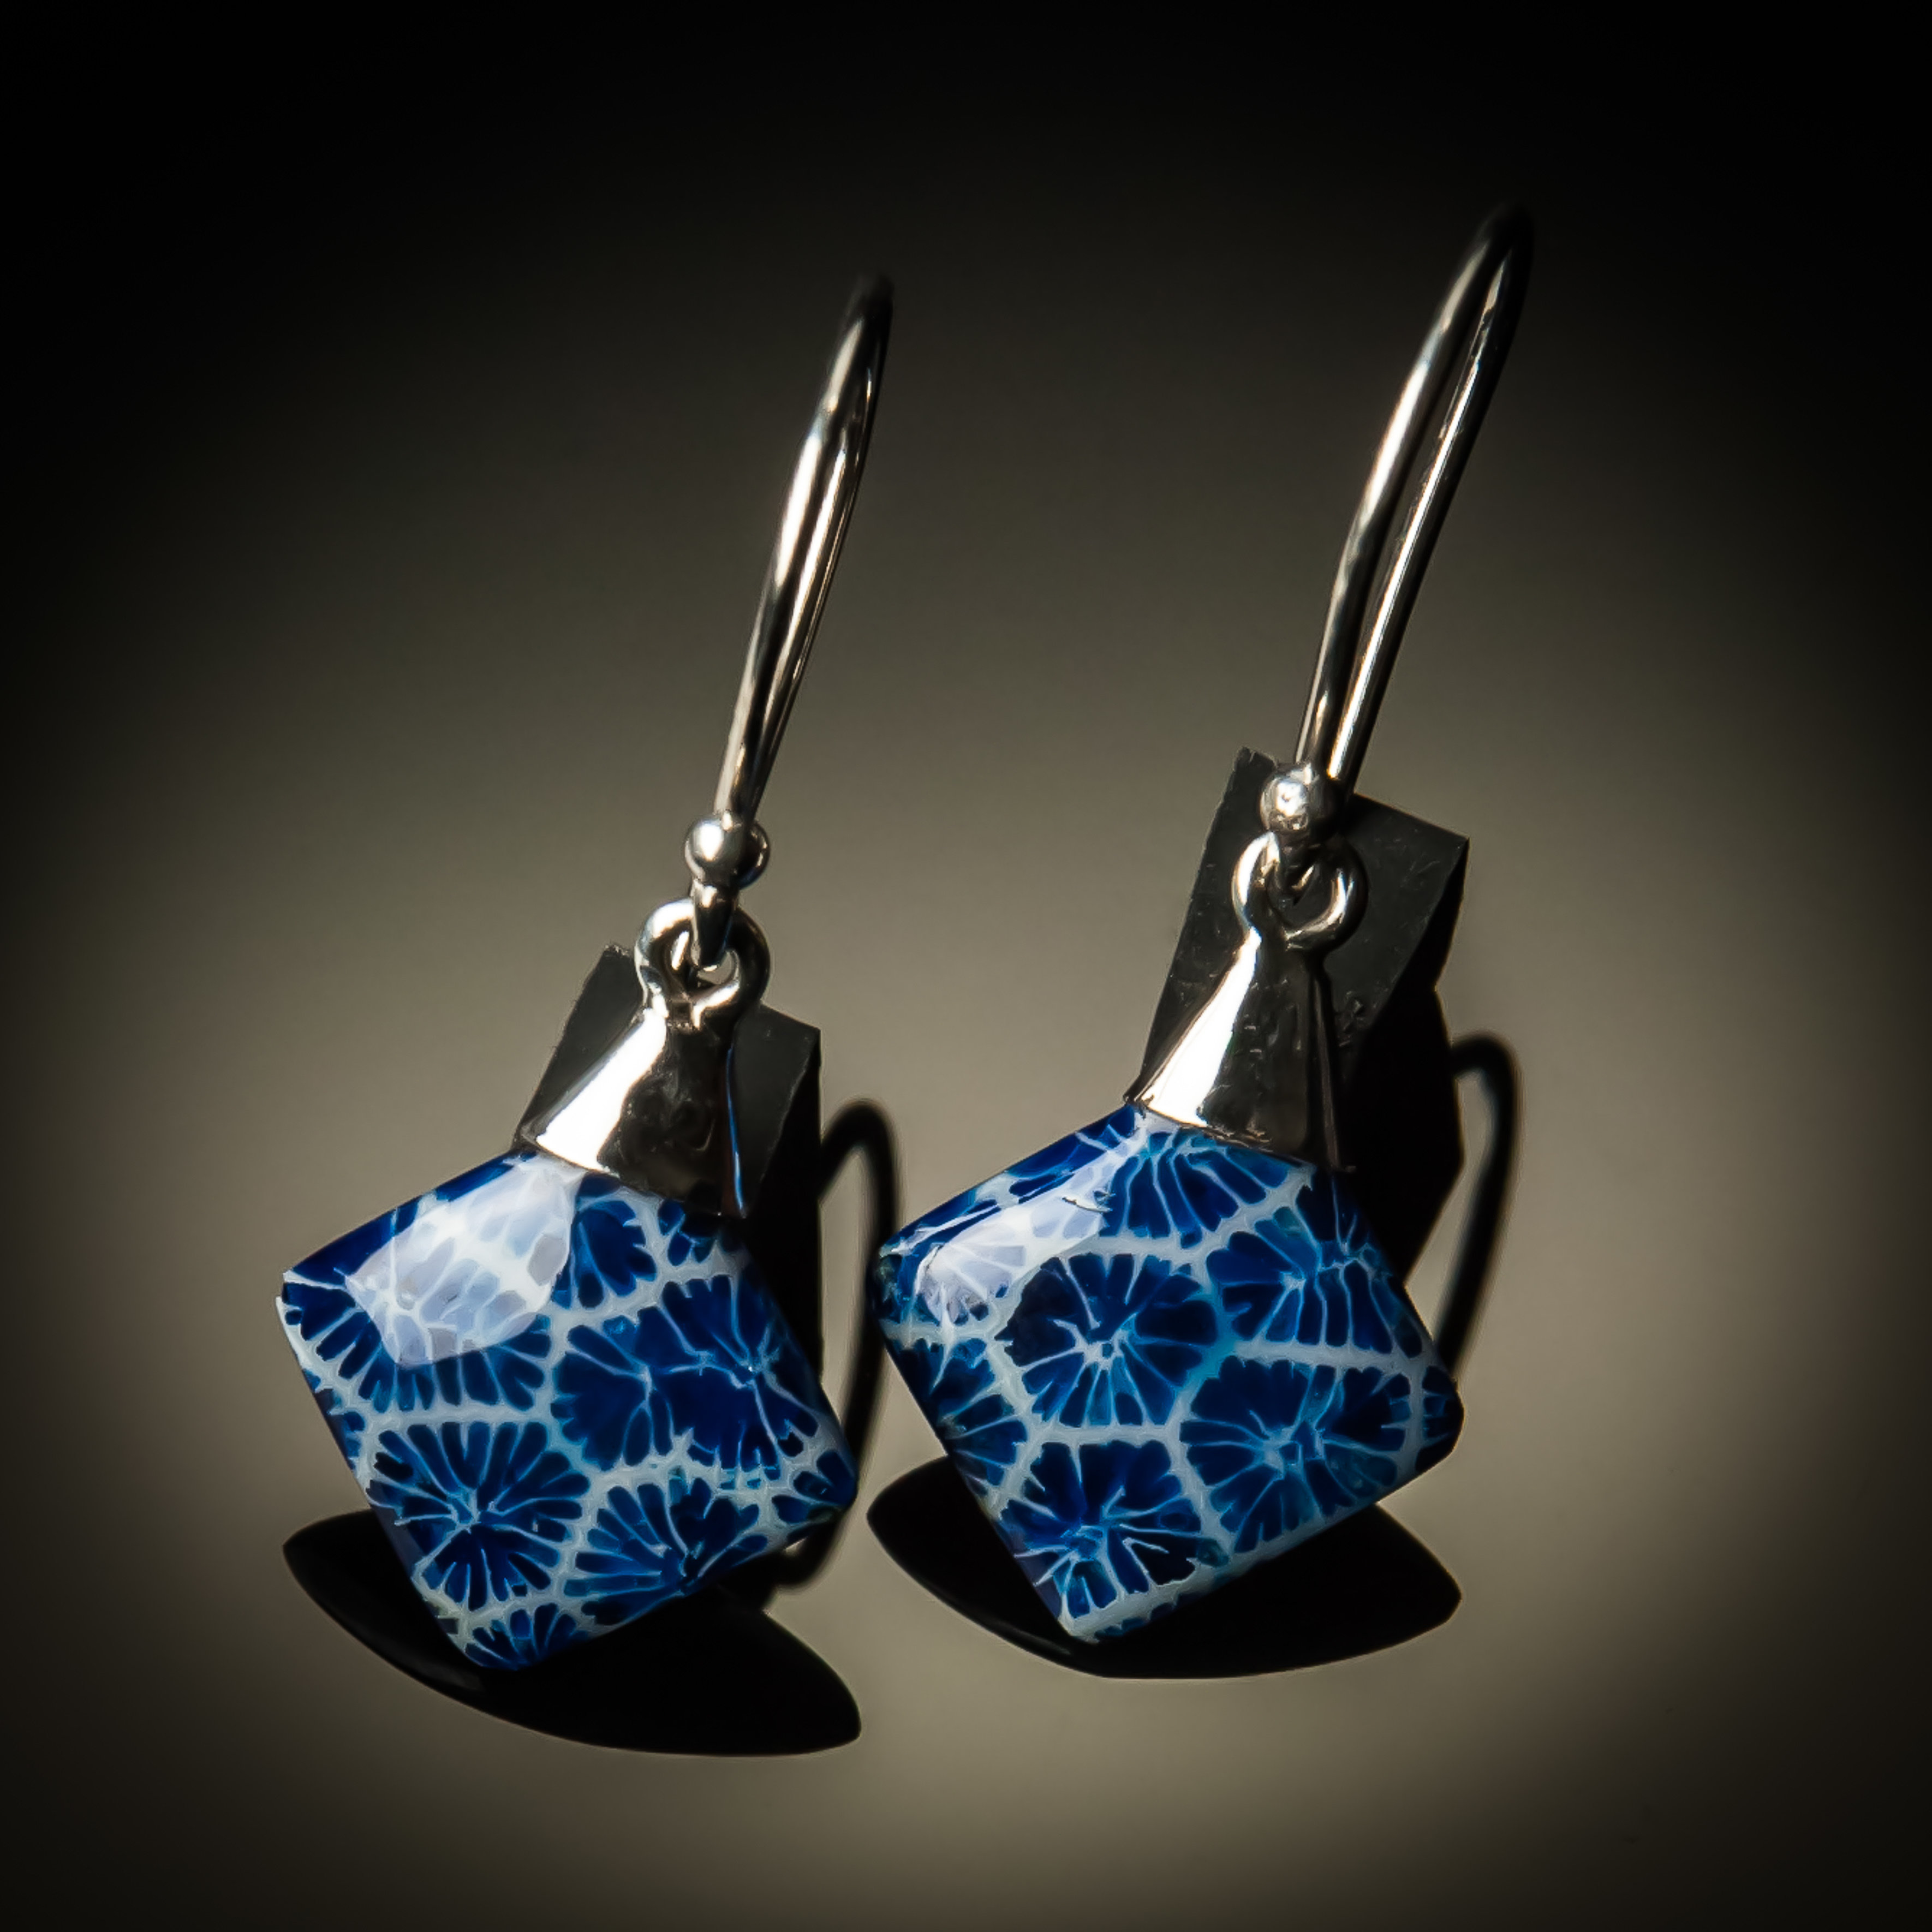 Blue Coral Small Sterling Silver Earrings ER-09012S-Blue coral